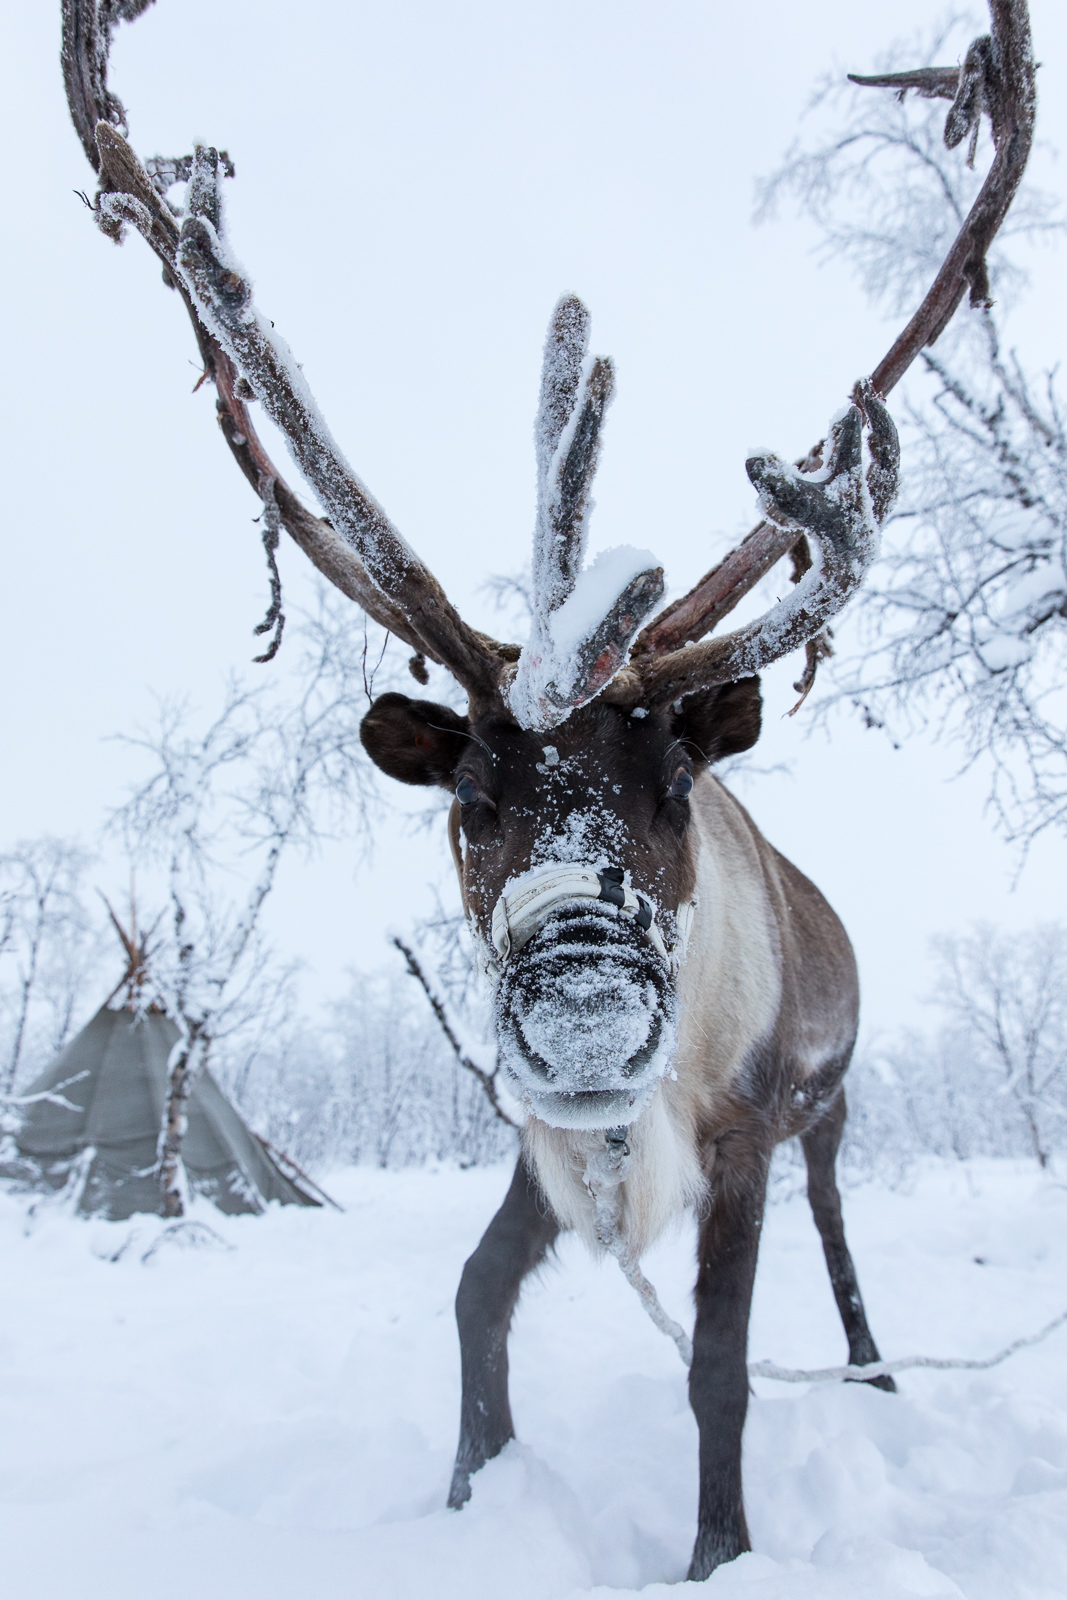 Reindeer and Lavvu. Canon 5D IV 24-70mm f/2.8 L II at 24mm, ISO 1600, 1/100s at f/5.6. November 2016. © Oliver C Wright